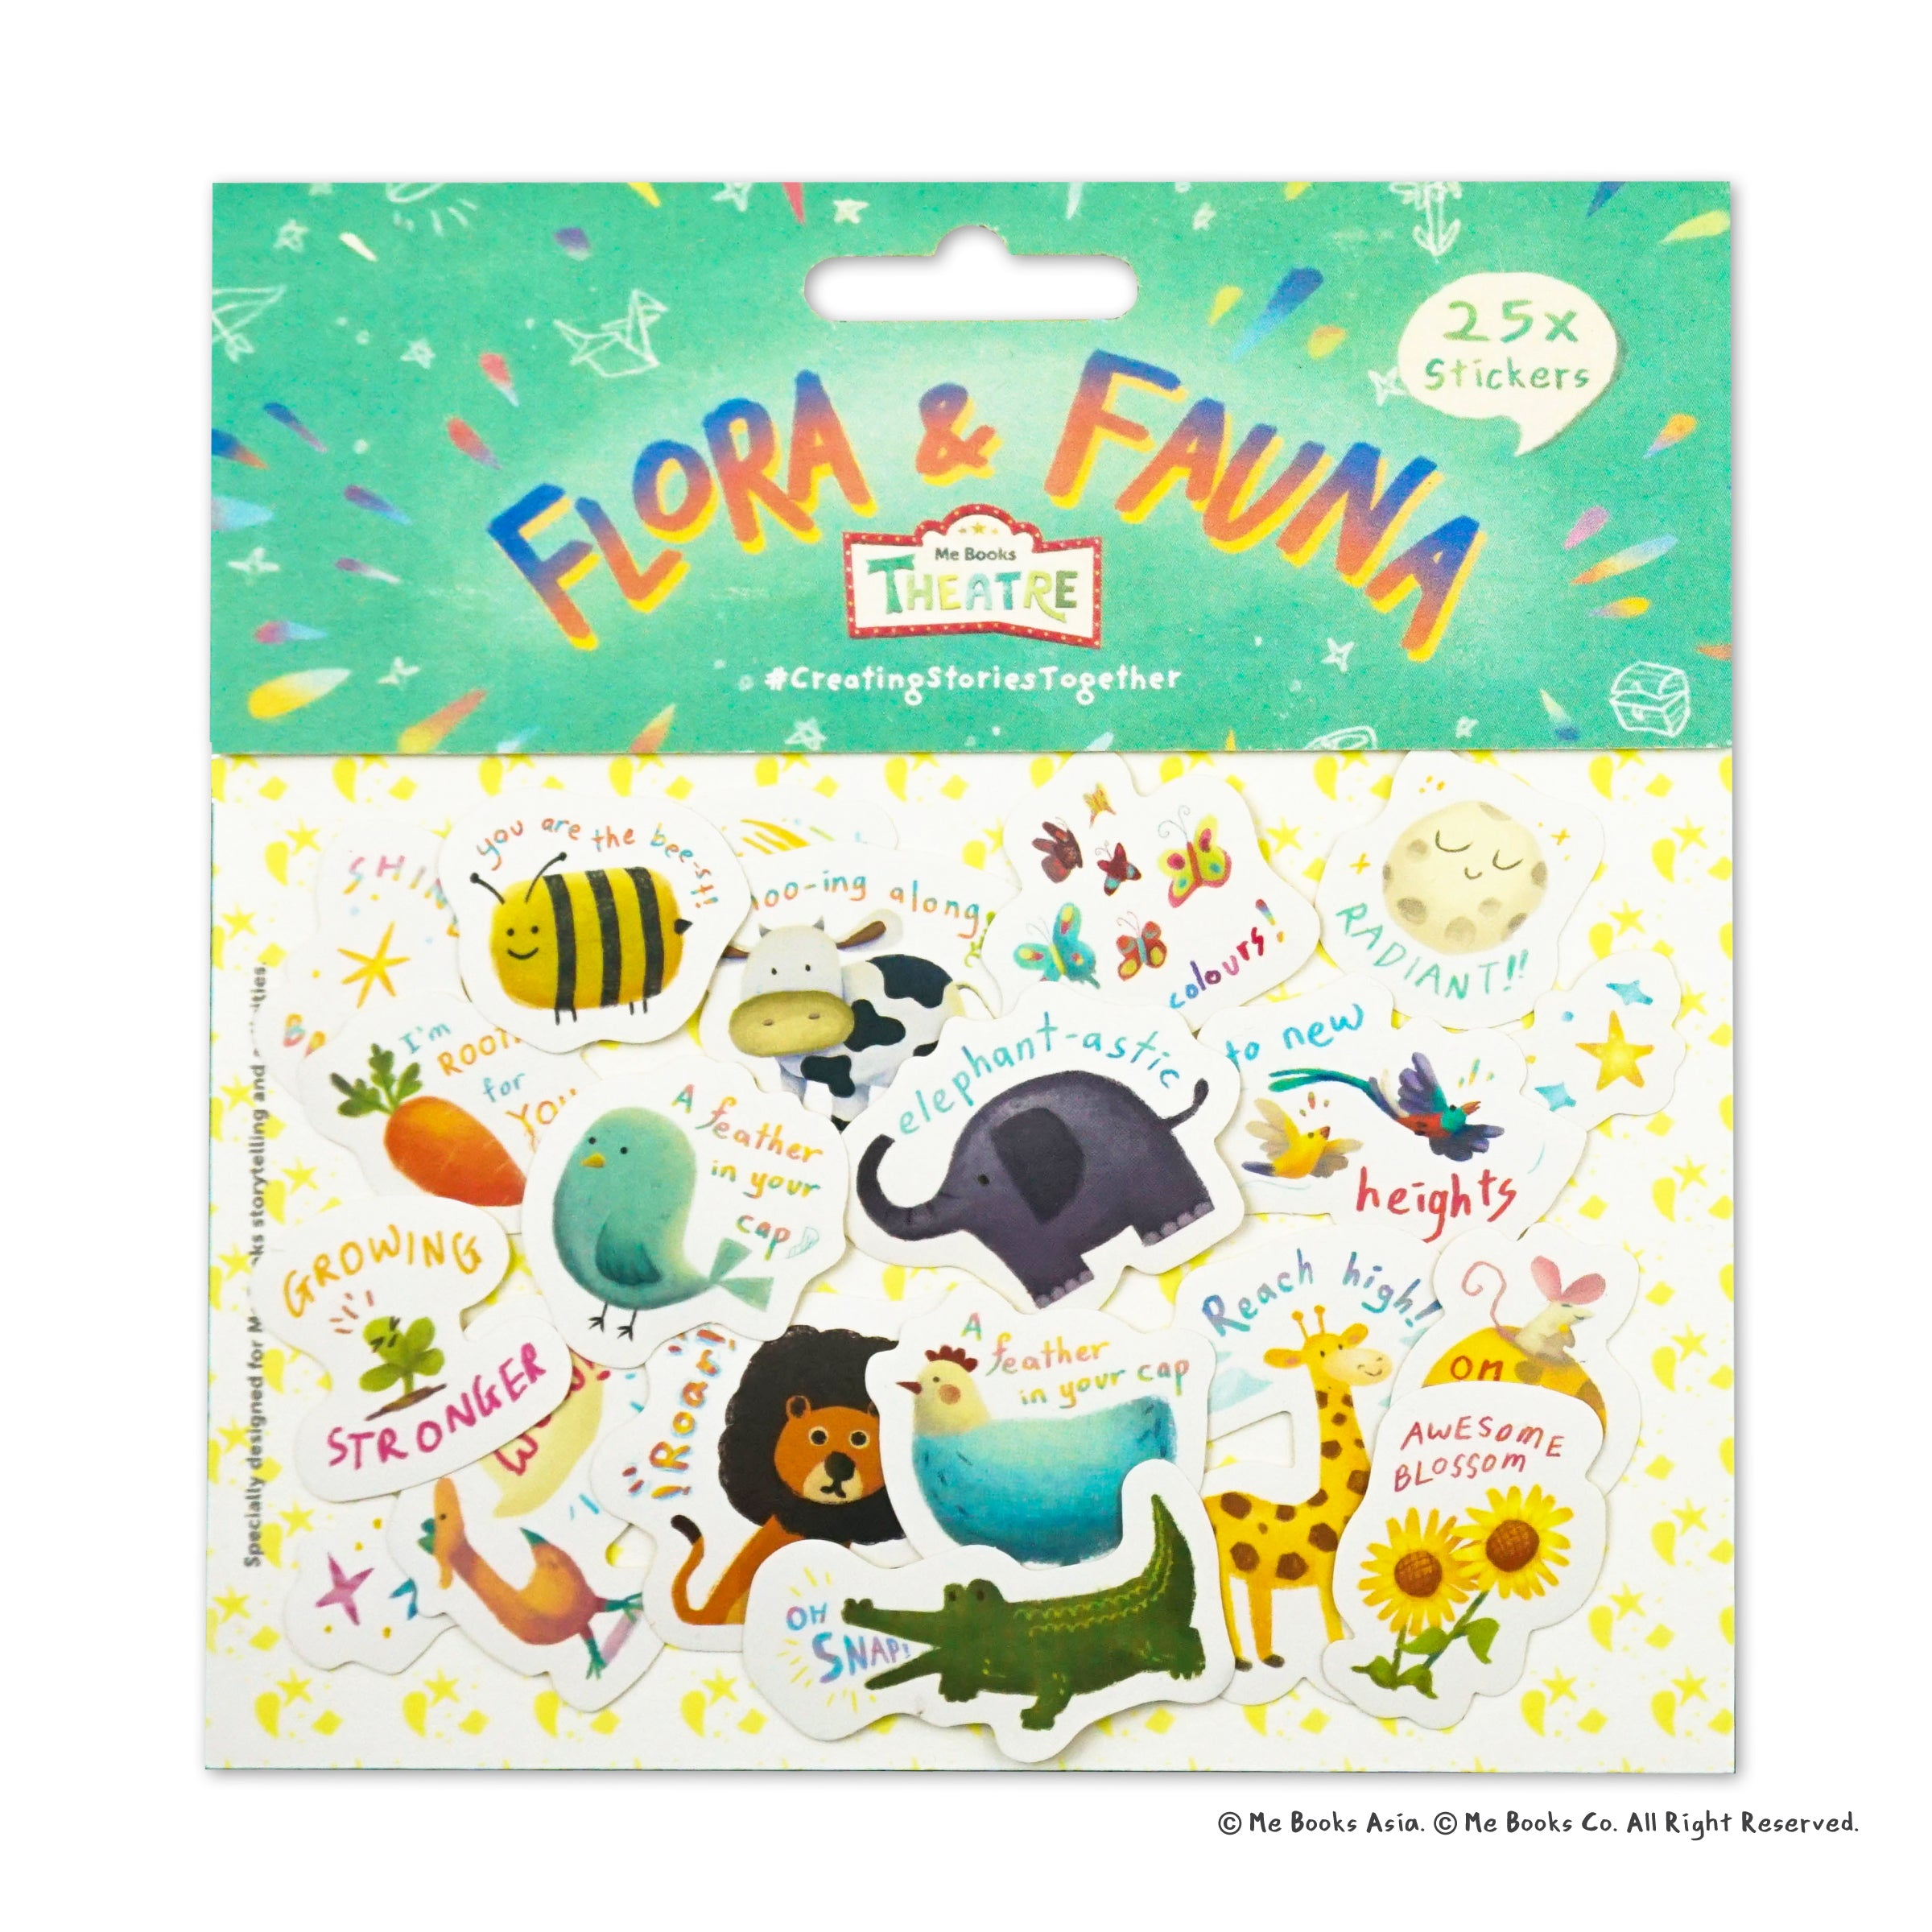 Me Books Theatre Stickers: Floral & Fauna - Me Books Asia Store